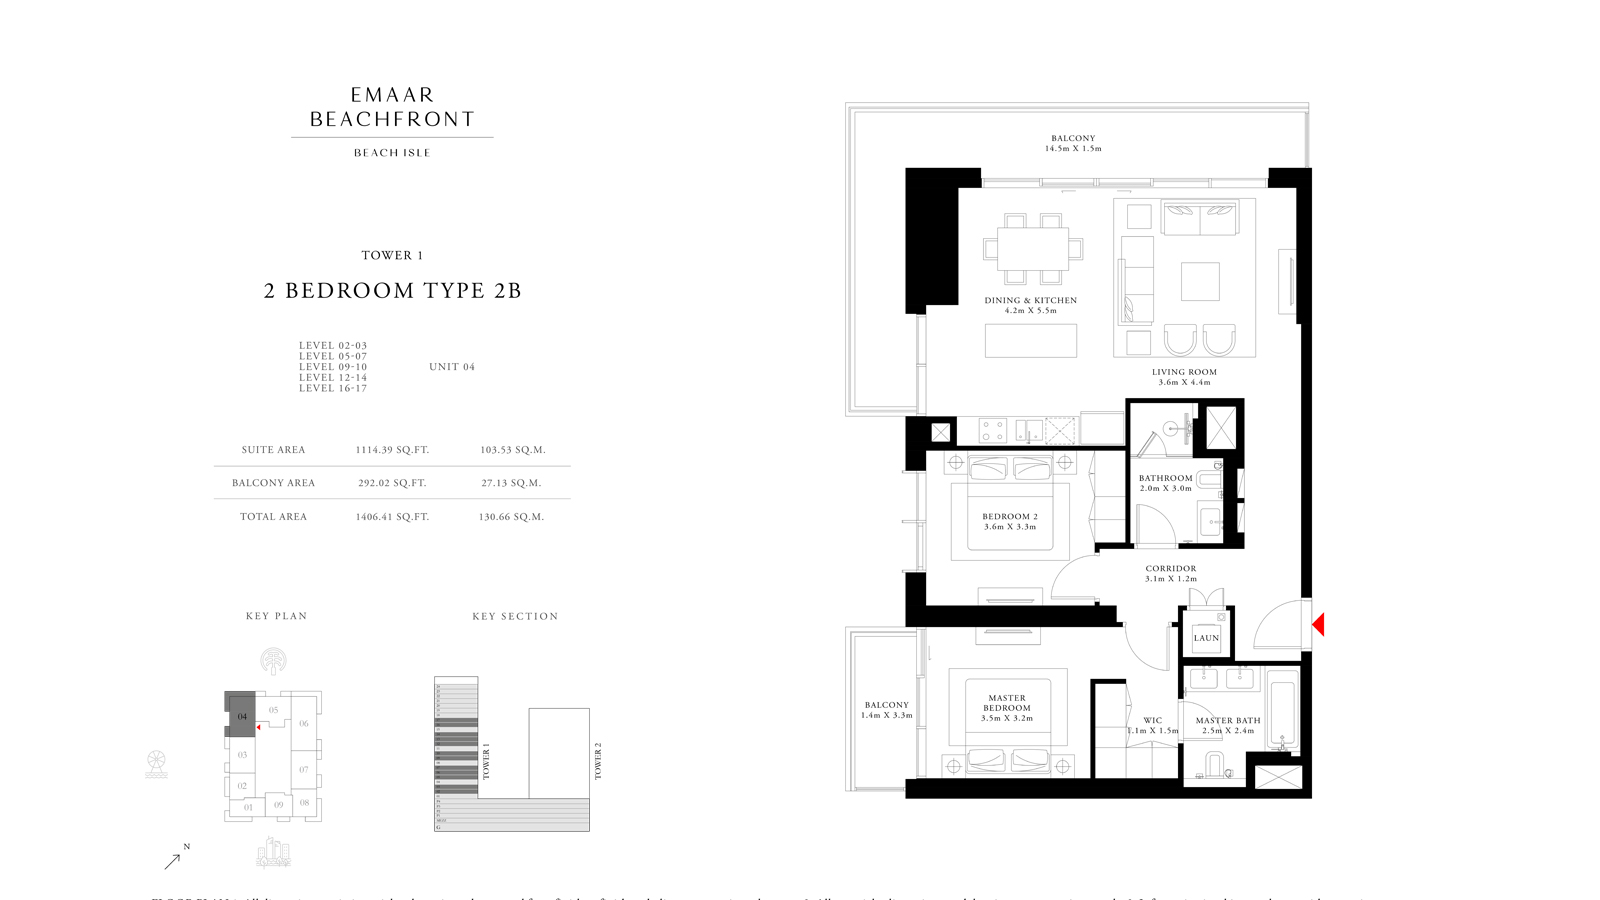 2 Bedroom Type 2b Tower 1, Size 1406    sq. ft.